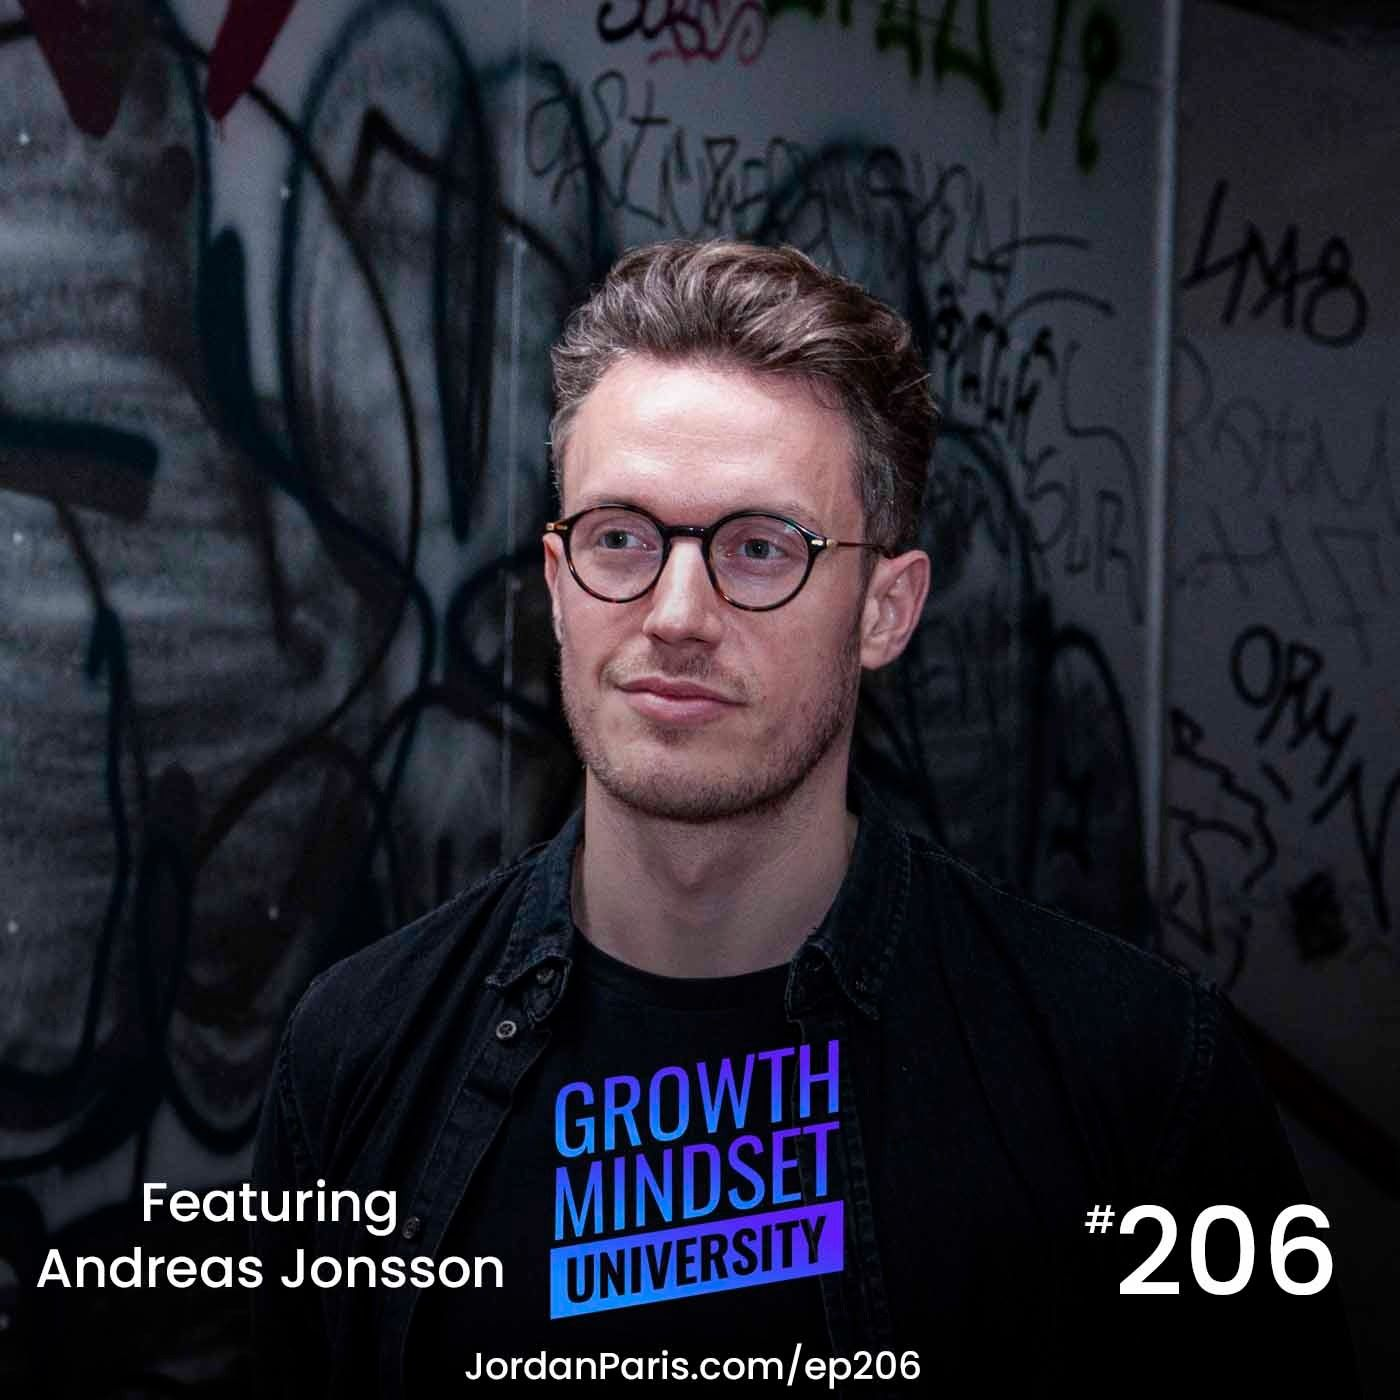 LinkedIn Masterclass with Andreas Jonsson, Co-Founder of Shield Intelligence